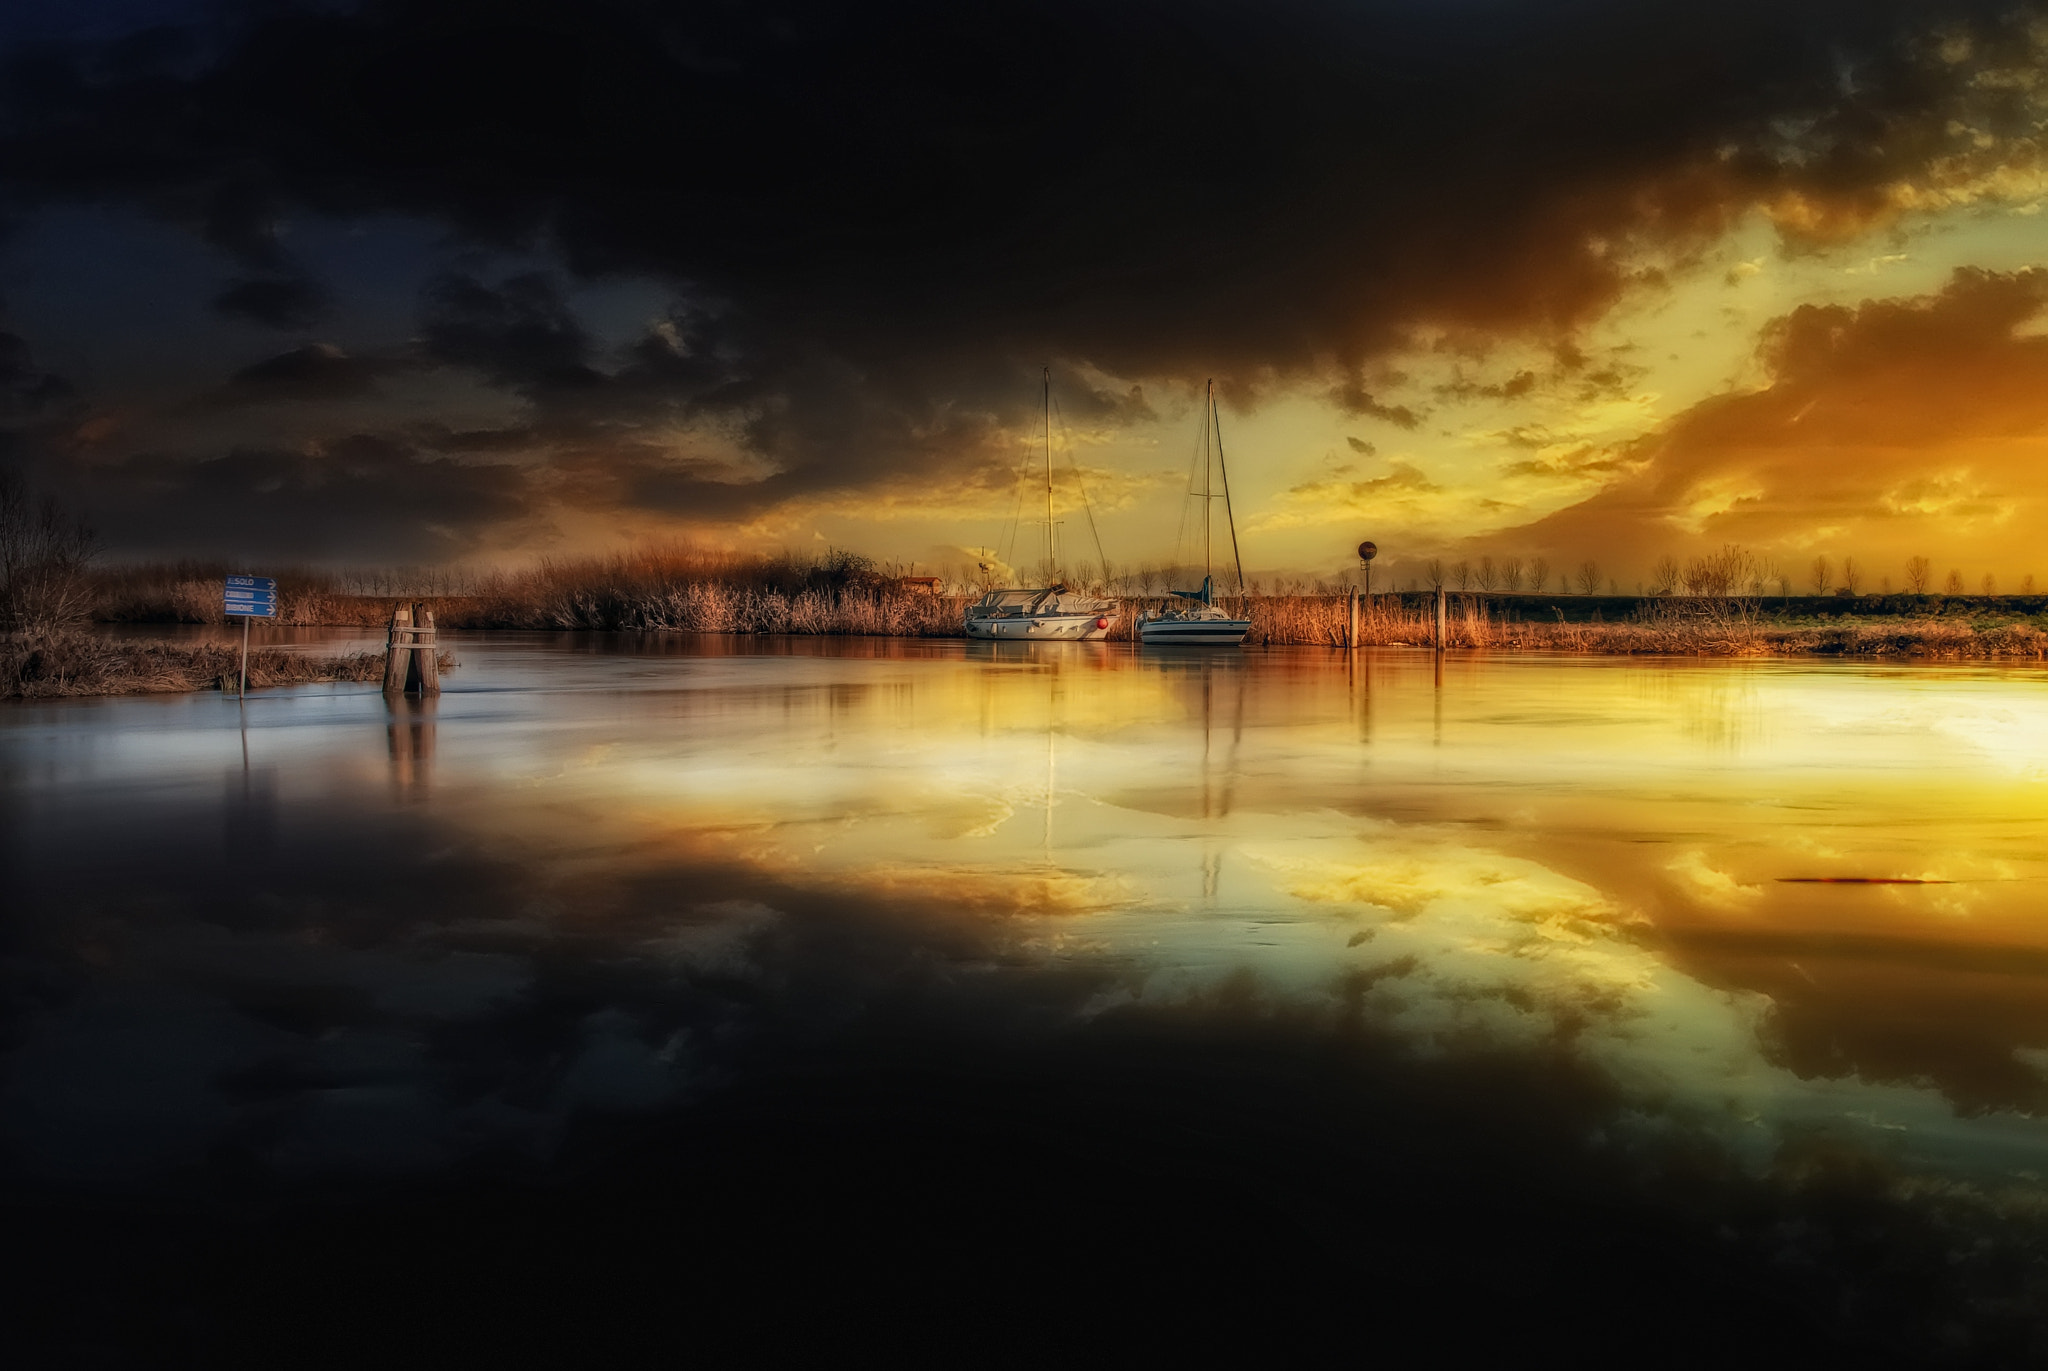 Photograph Untitled by Maurizio Fecchio on 500px